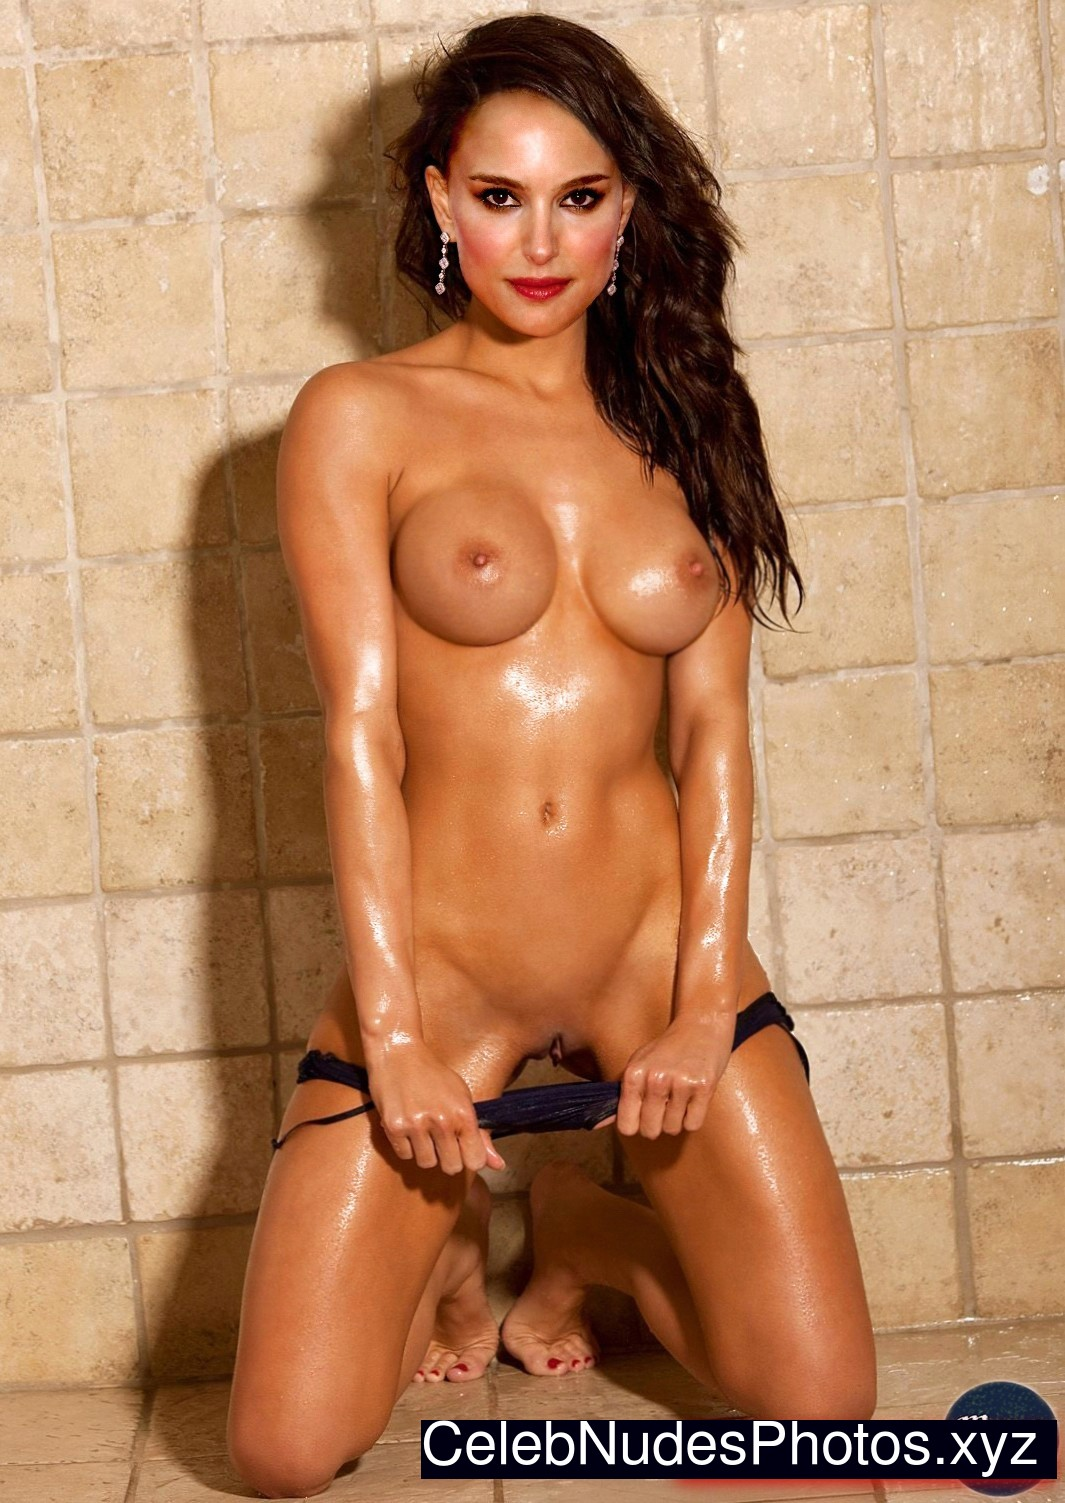 free fake nude celebrity picture gallery jpg 1500x1000